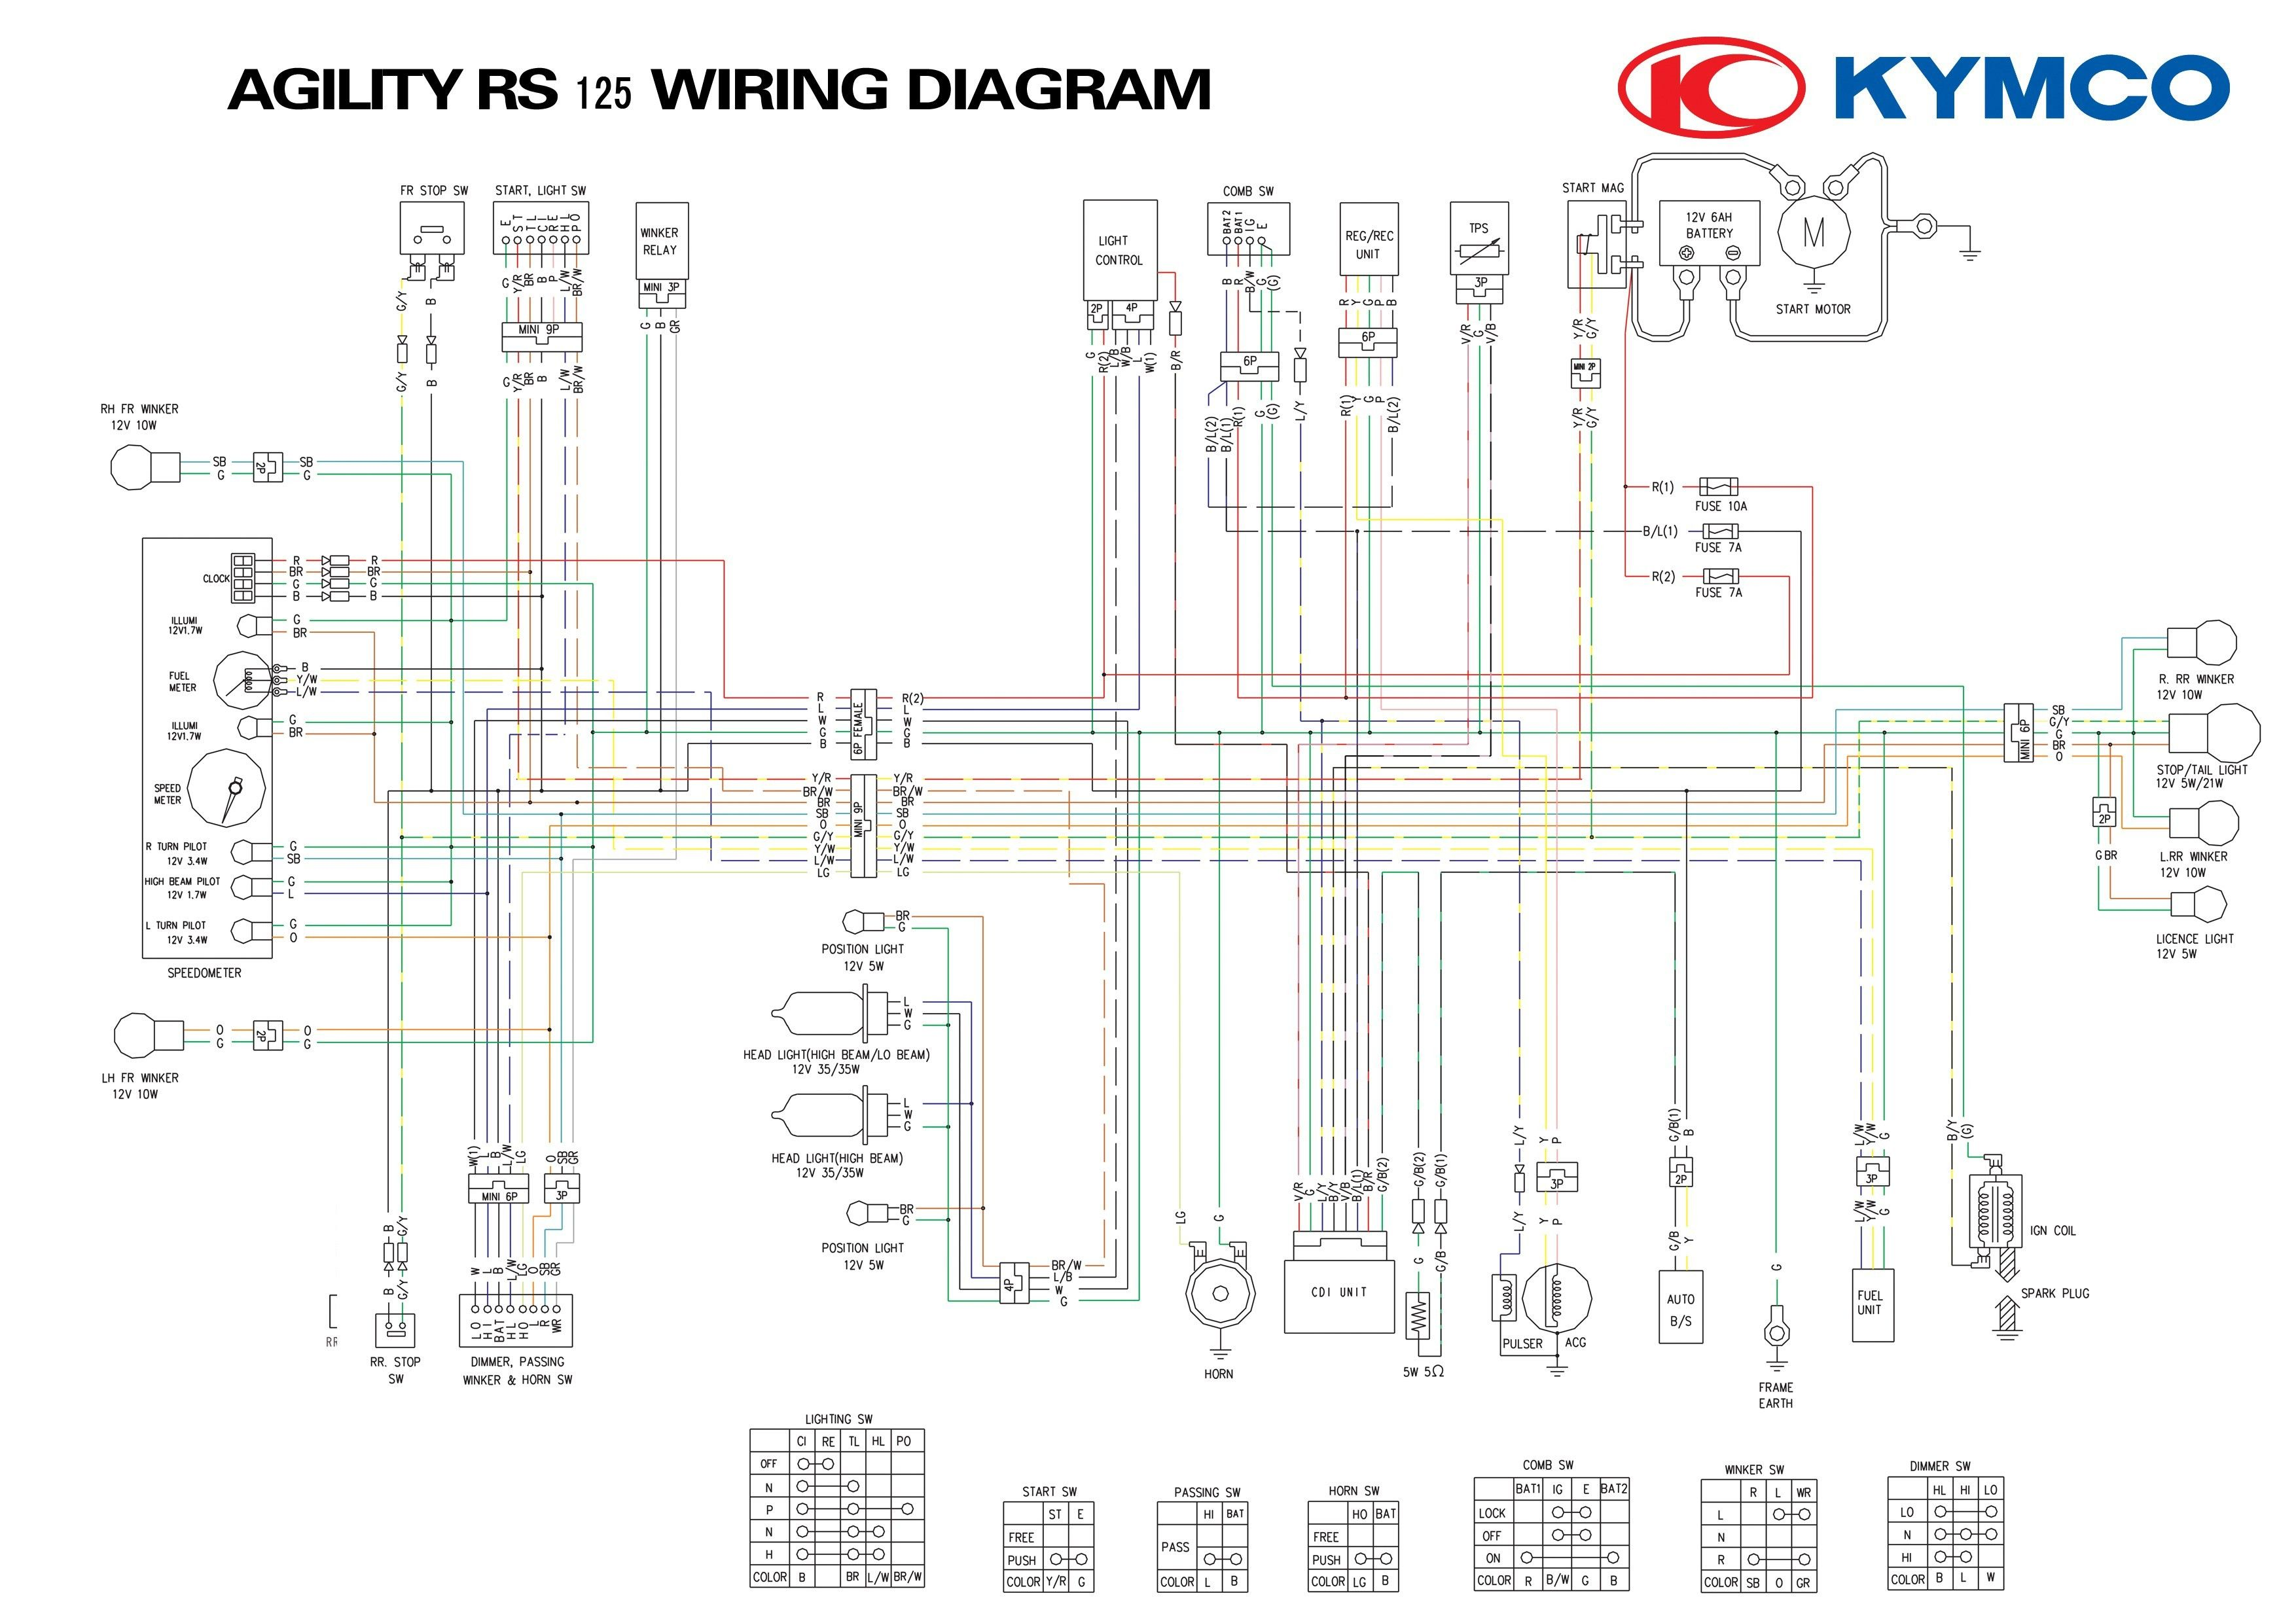 Unique Lambretta Ac Wiring Diagram #diagramsample #